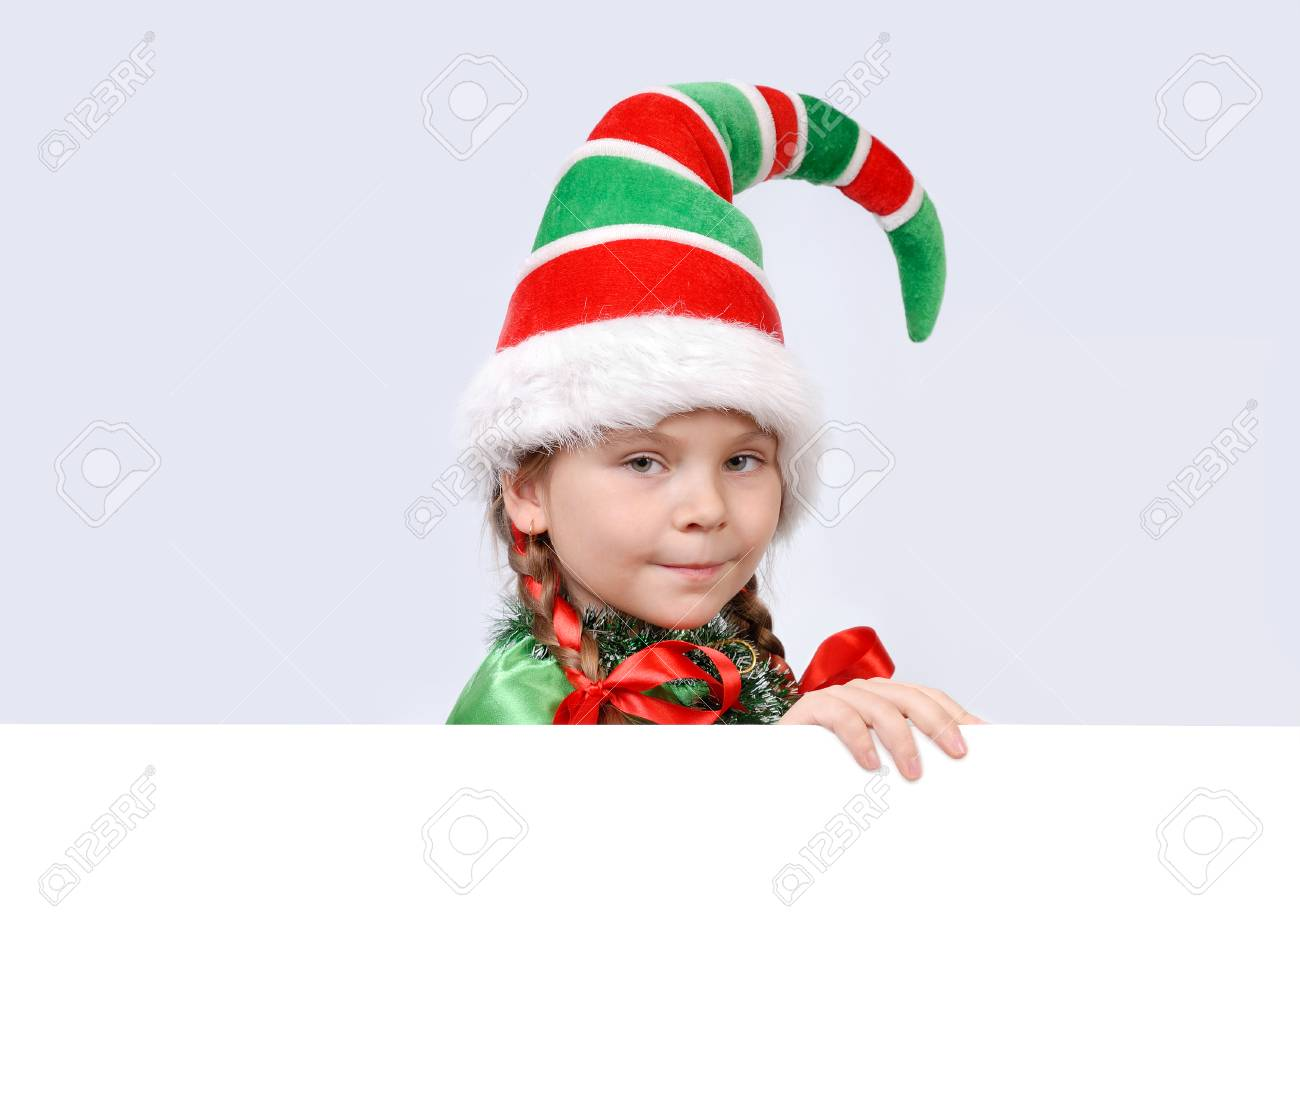 Girl In Suit Of Christmas Elf With The White Banner Stock Photo ...